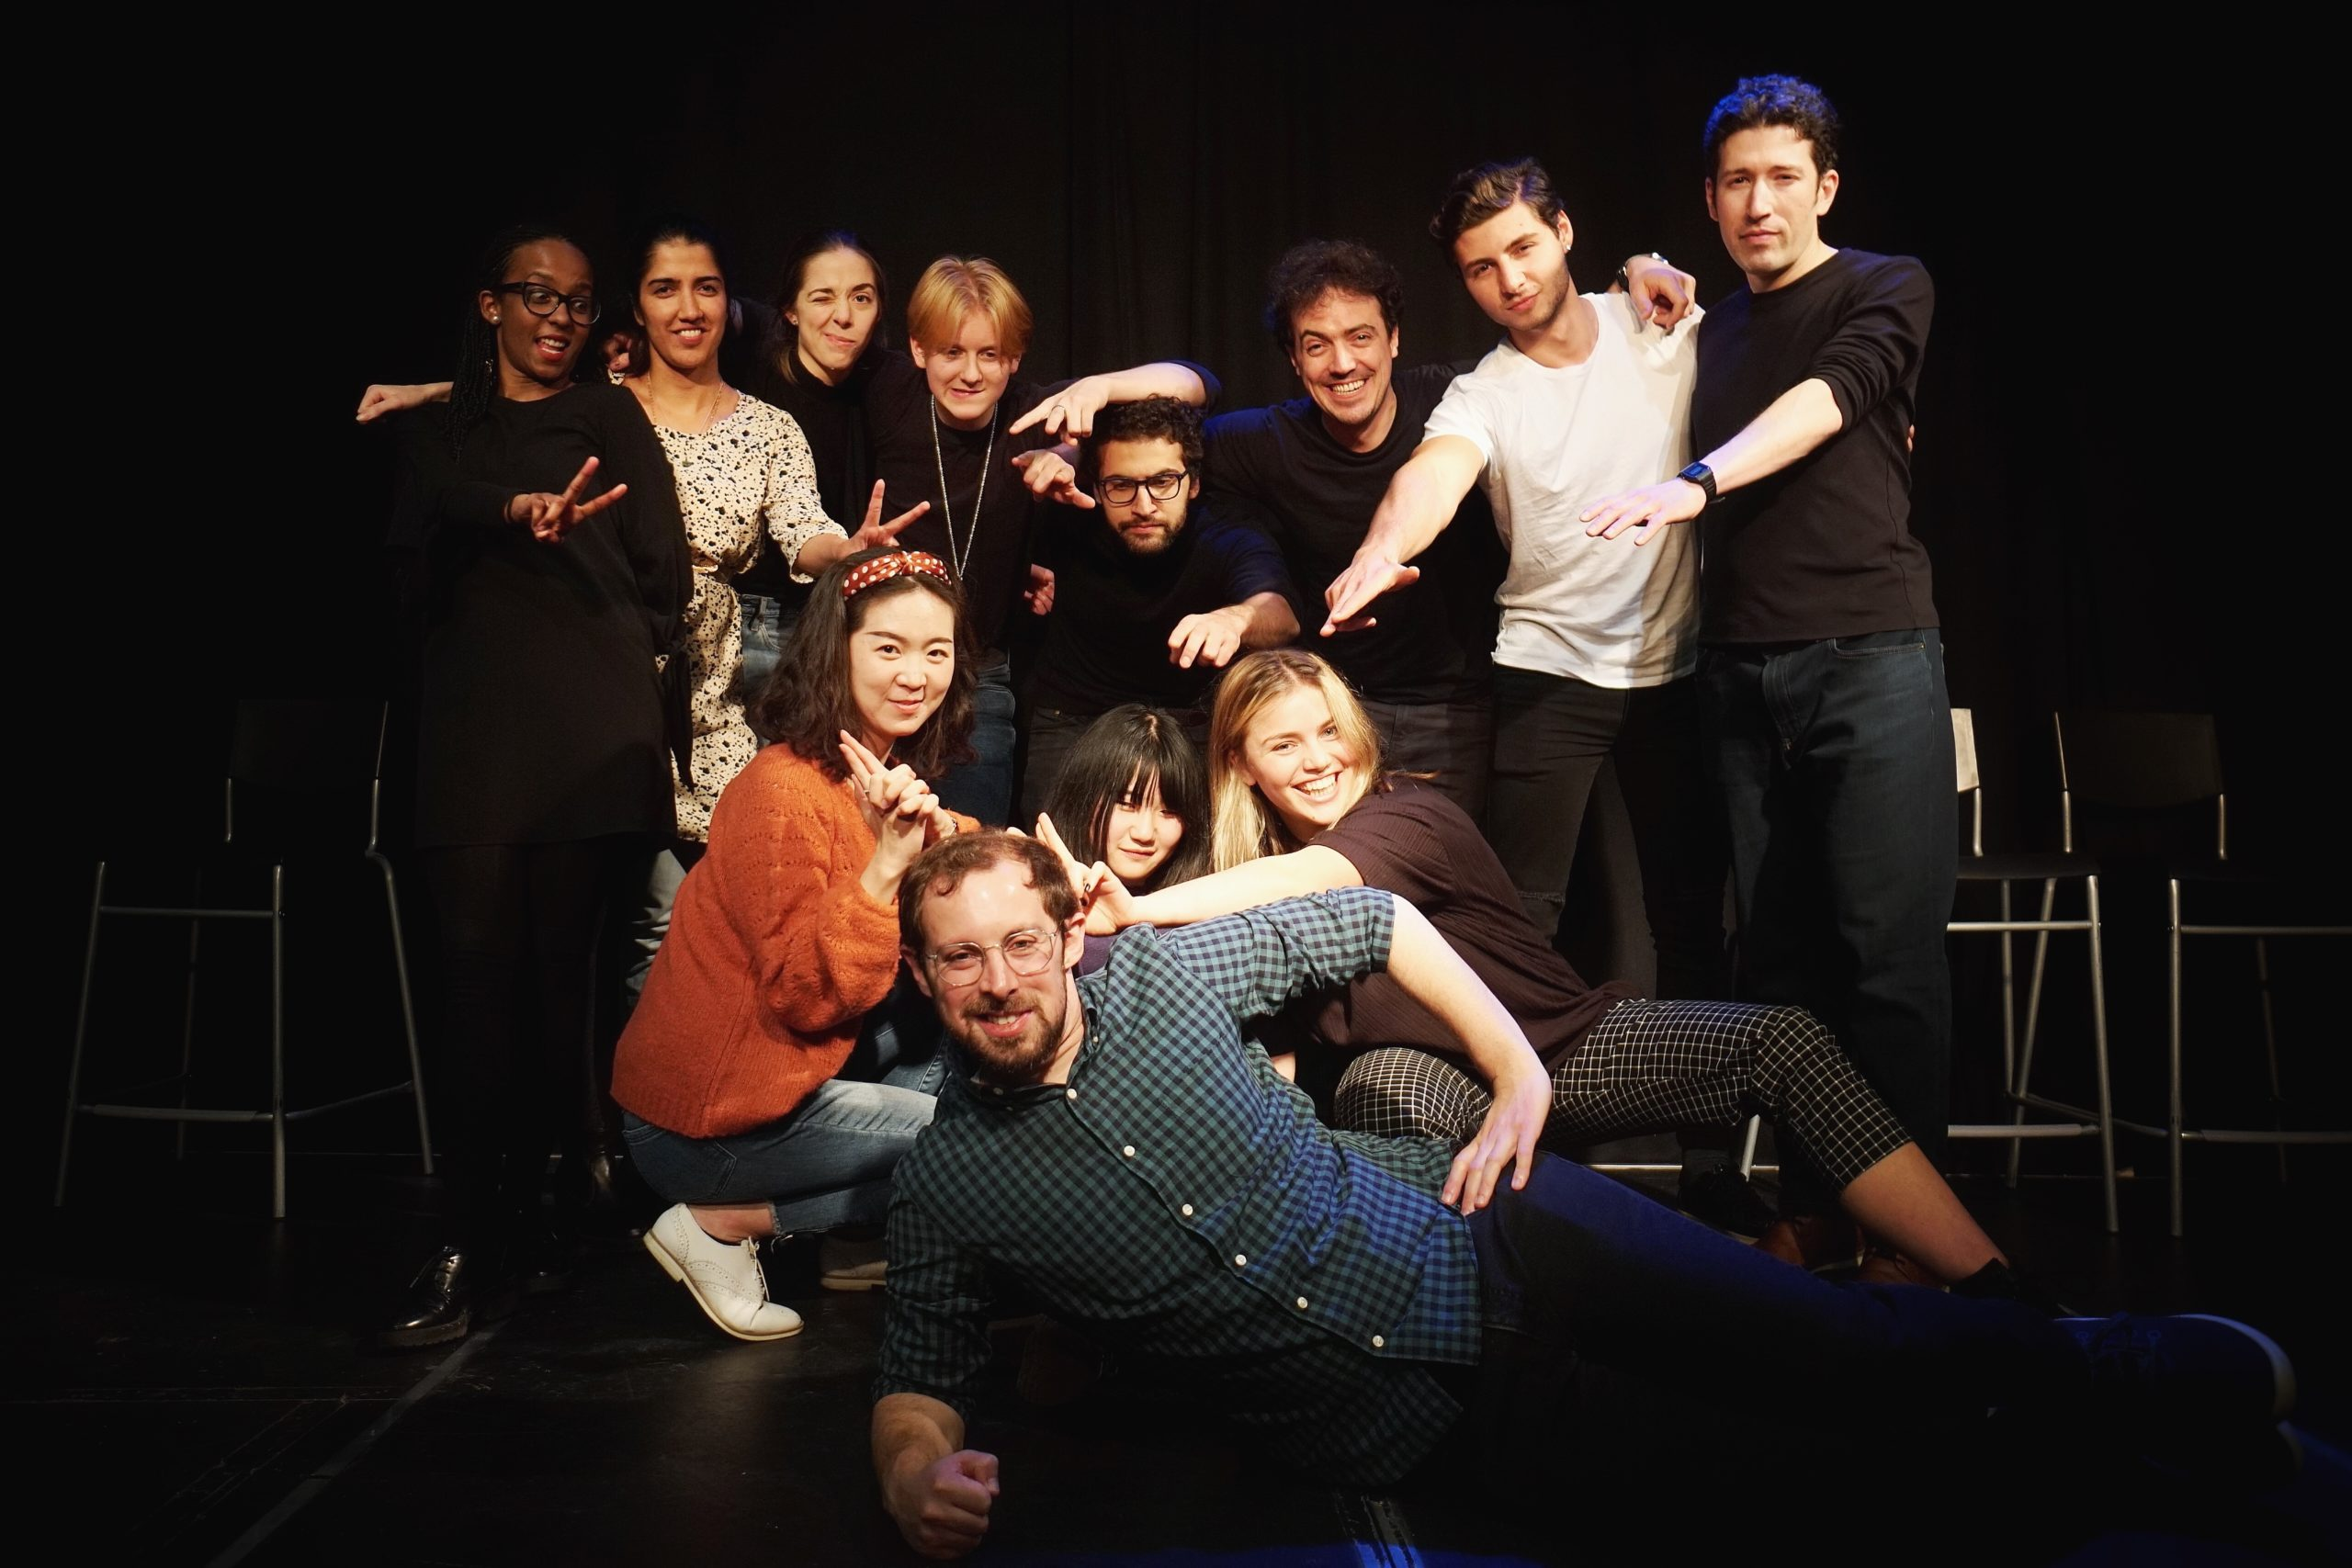 Act Attack's Pure improv show with Isaac, the teacher. Isaac is laying on the ground, the students are behind him, pointing at him